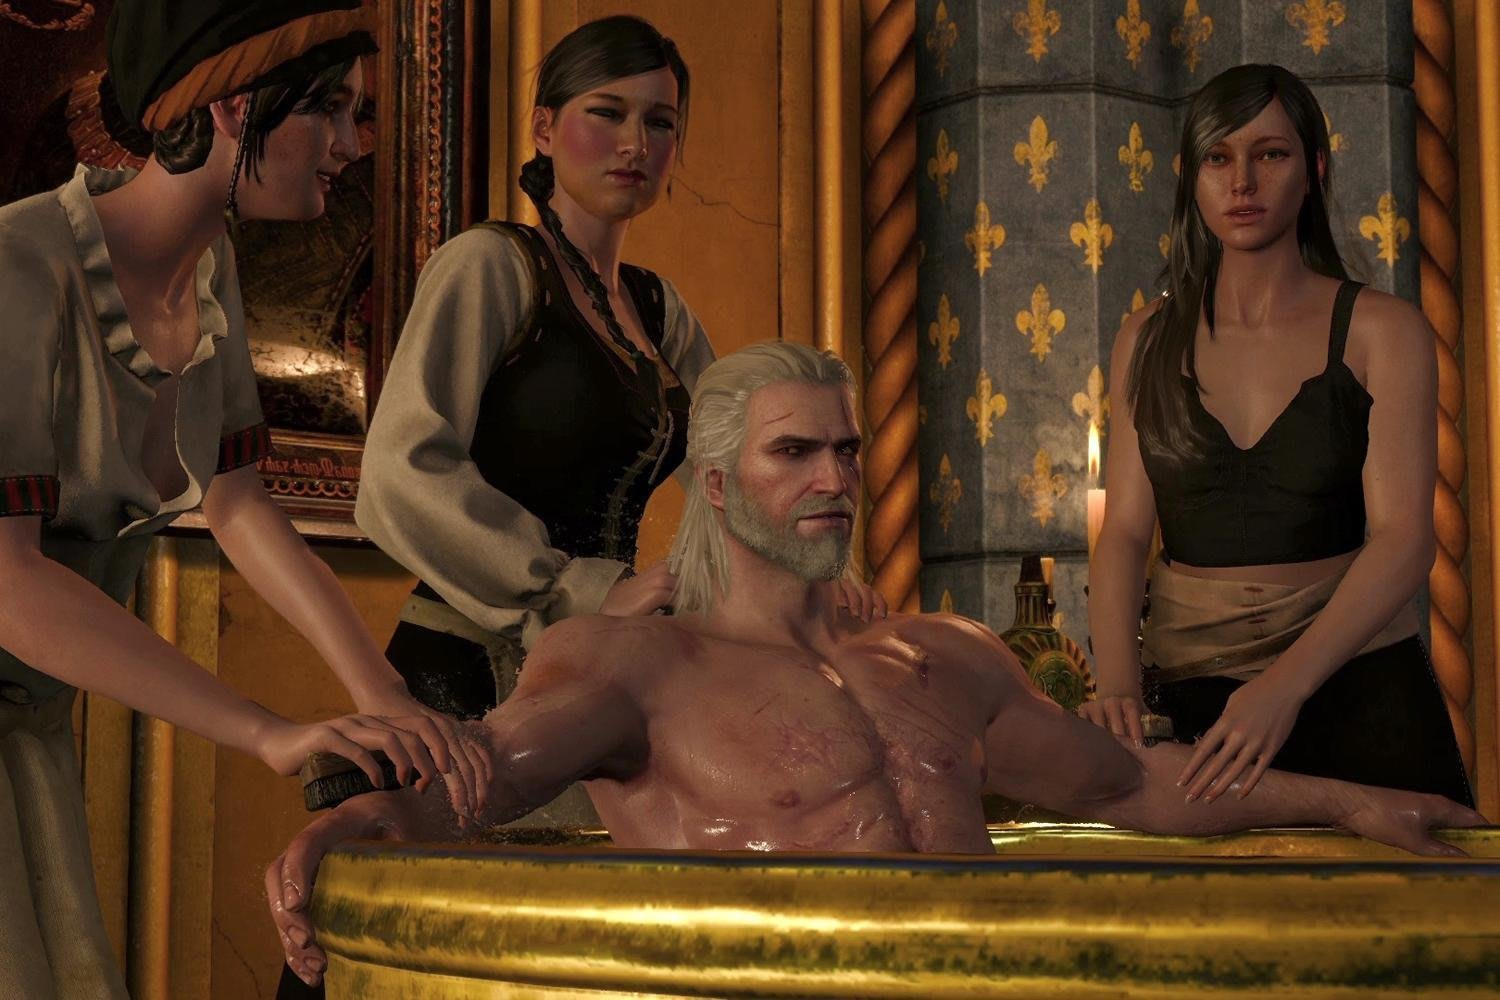 13 Rooms Porn Game Sex Scenes the 7 most awkward sex scenes in video games